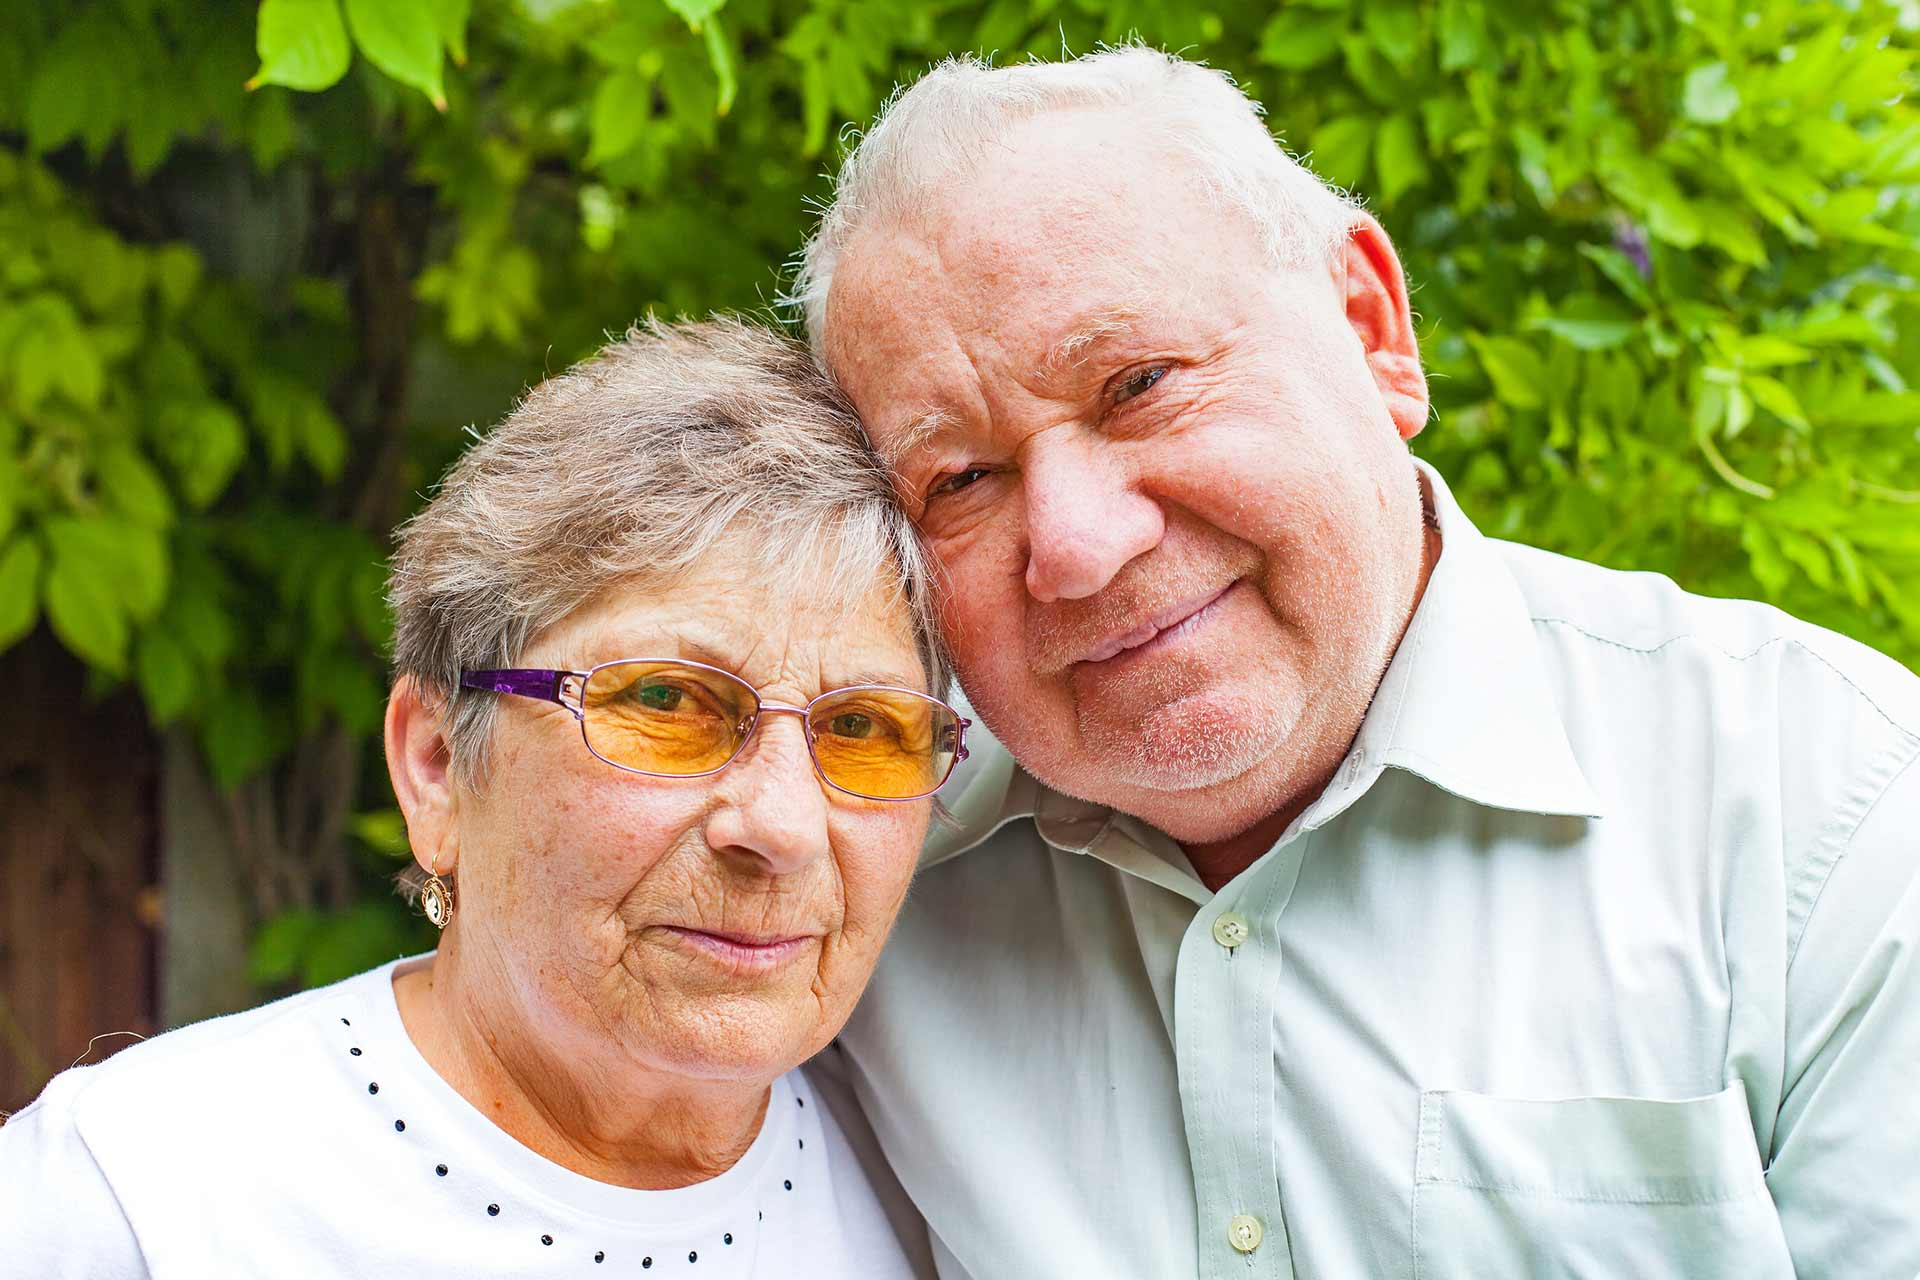 Spouse who can benefit from CARERS program for caring for someone with dementia